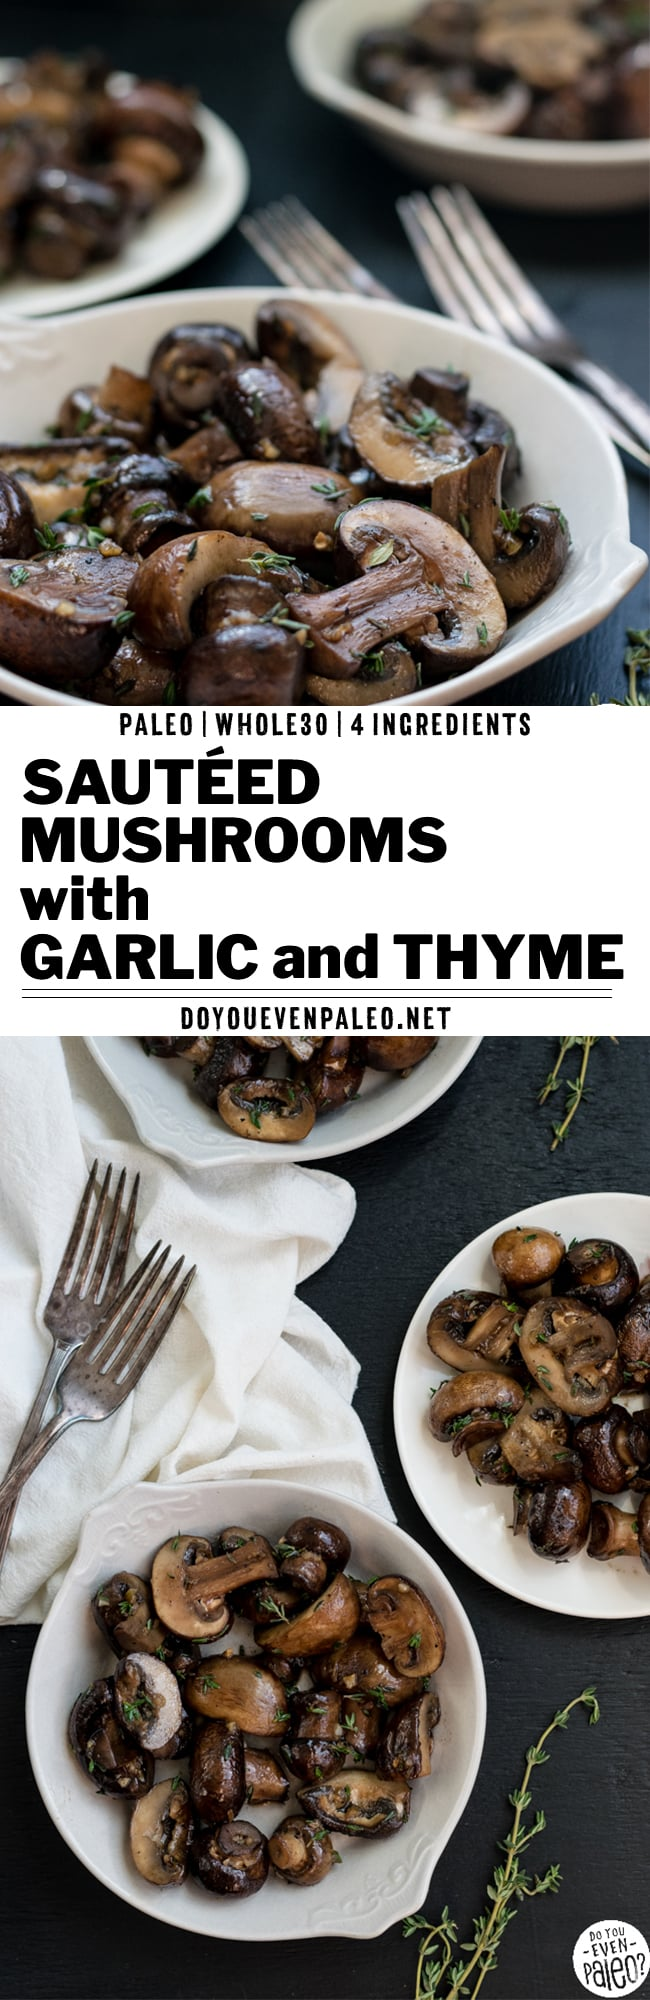 Easy Paleo Sautéed Mushrooms with Garlic & Thyme | DoYouEvenPaleo.net